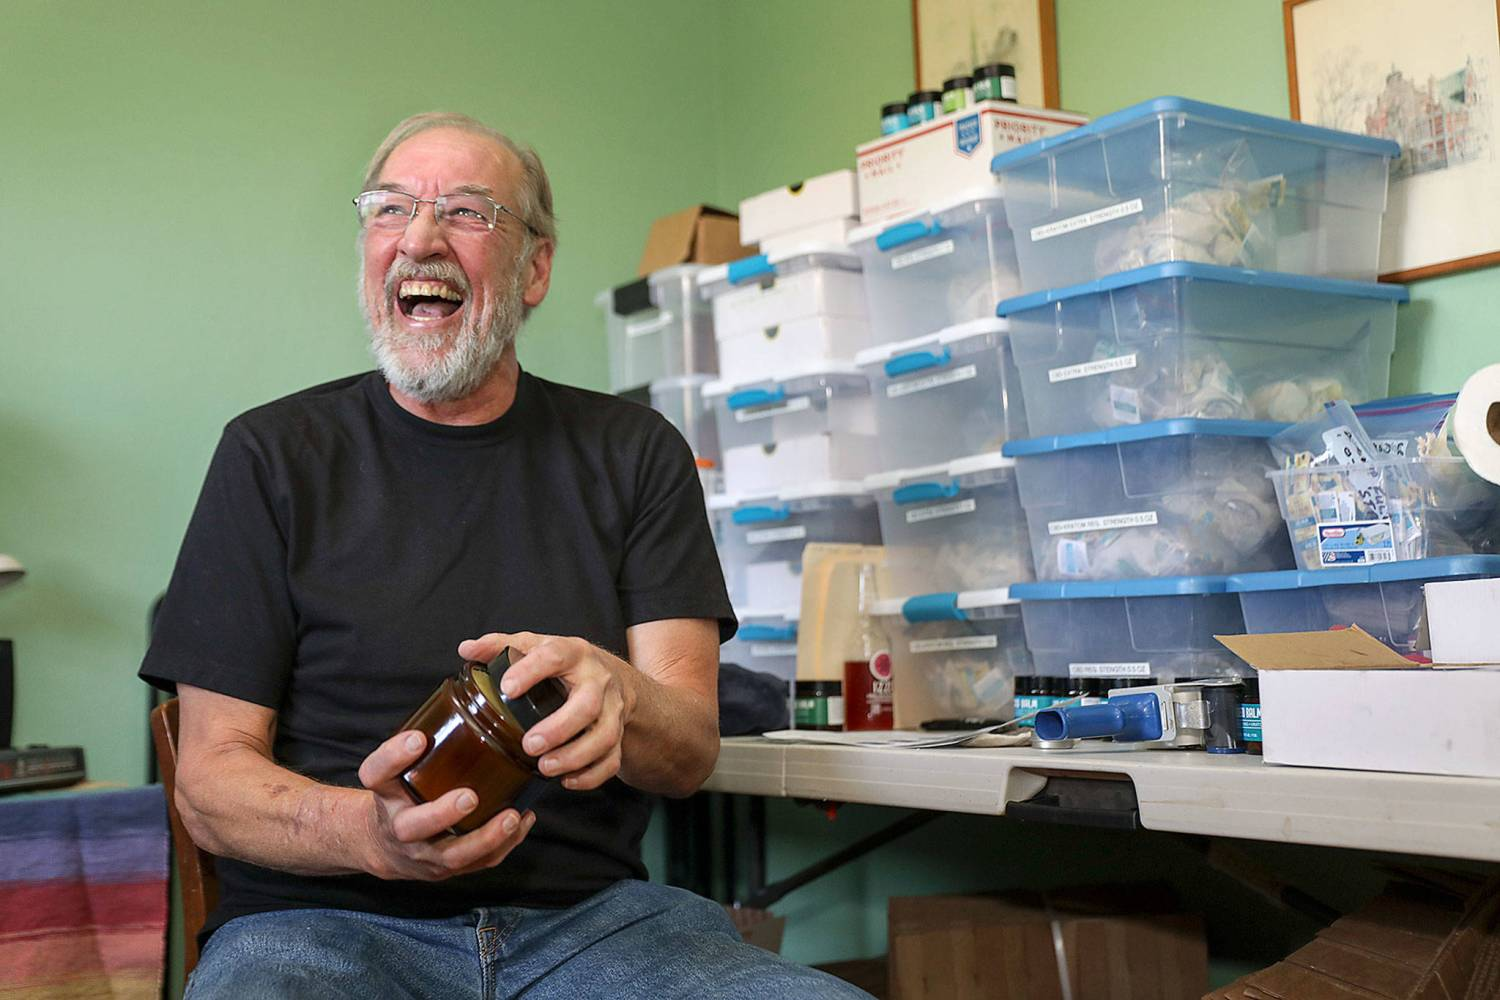 Ron Gordon, who worked as a carpenter for years, began using CBD topicals to relieve his body aches. Then he started making it and selling it online. He packs and ships it from the office in his Snohomish home, company headquarters for Ron's Balms & Botanicals. (Lizz Giordano / The Herald)